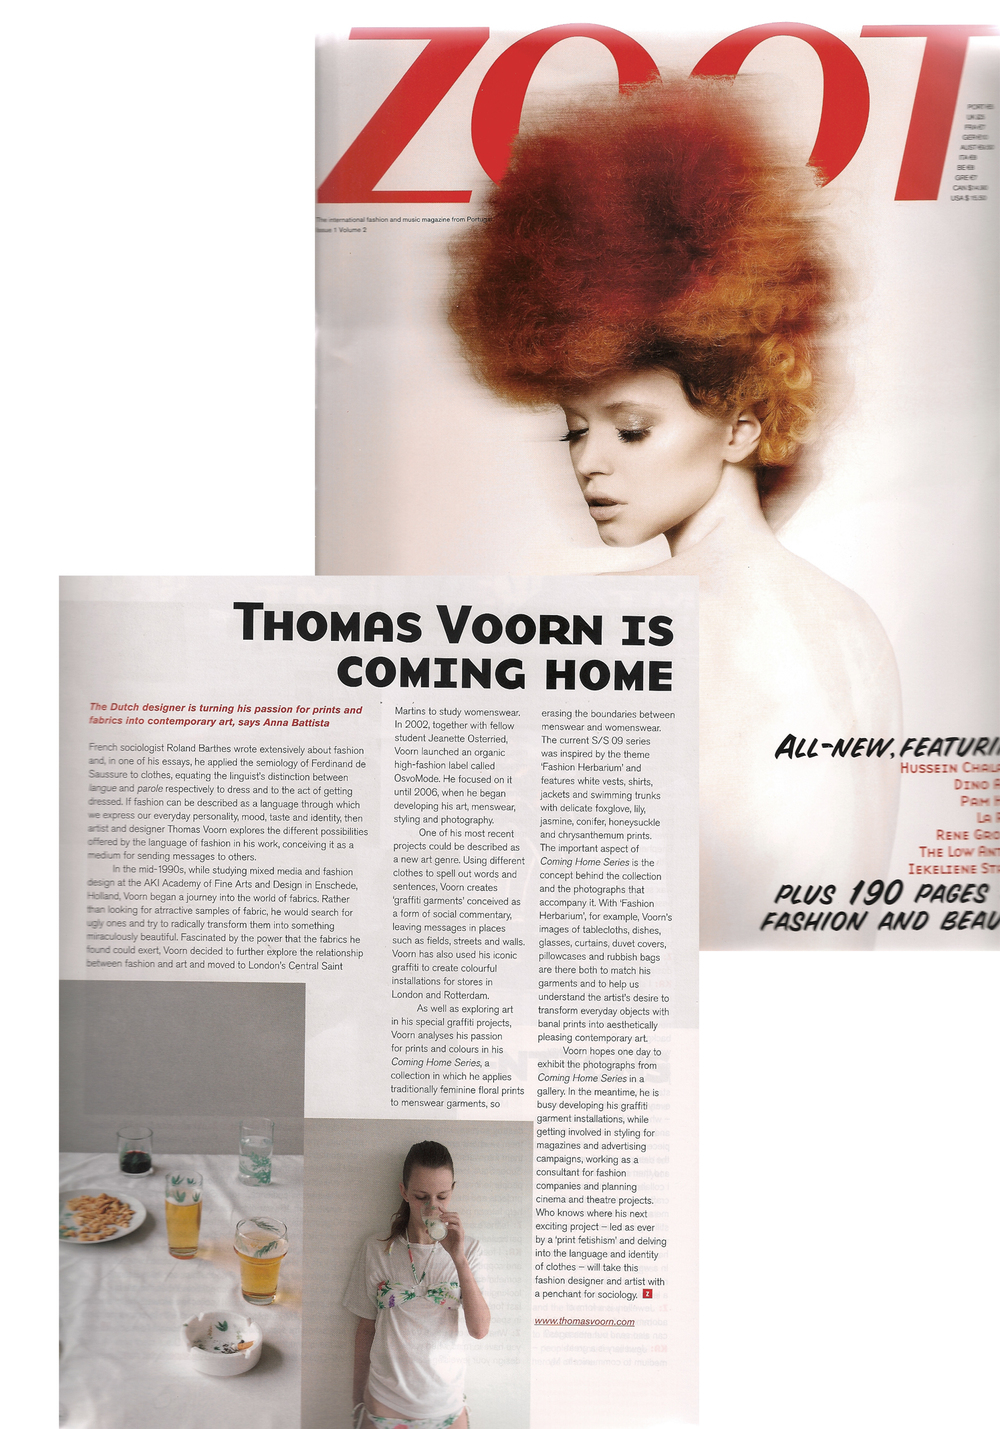 Press-Zoot-magazine-on-Thomas-Voorn.jpg